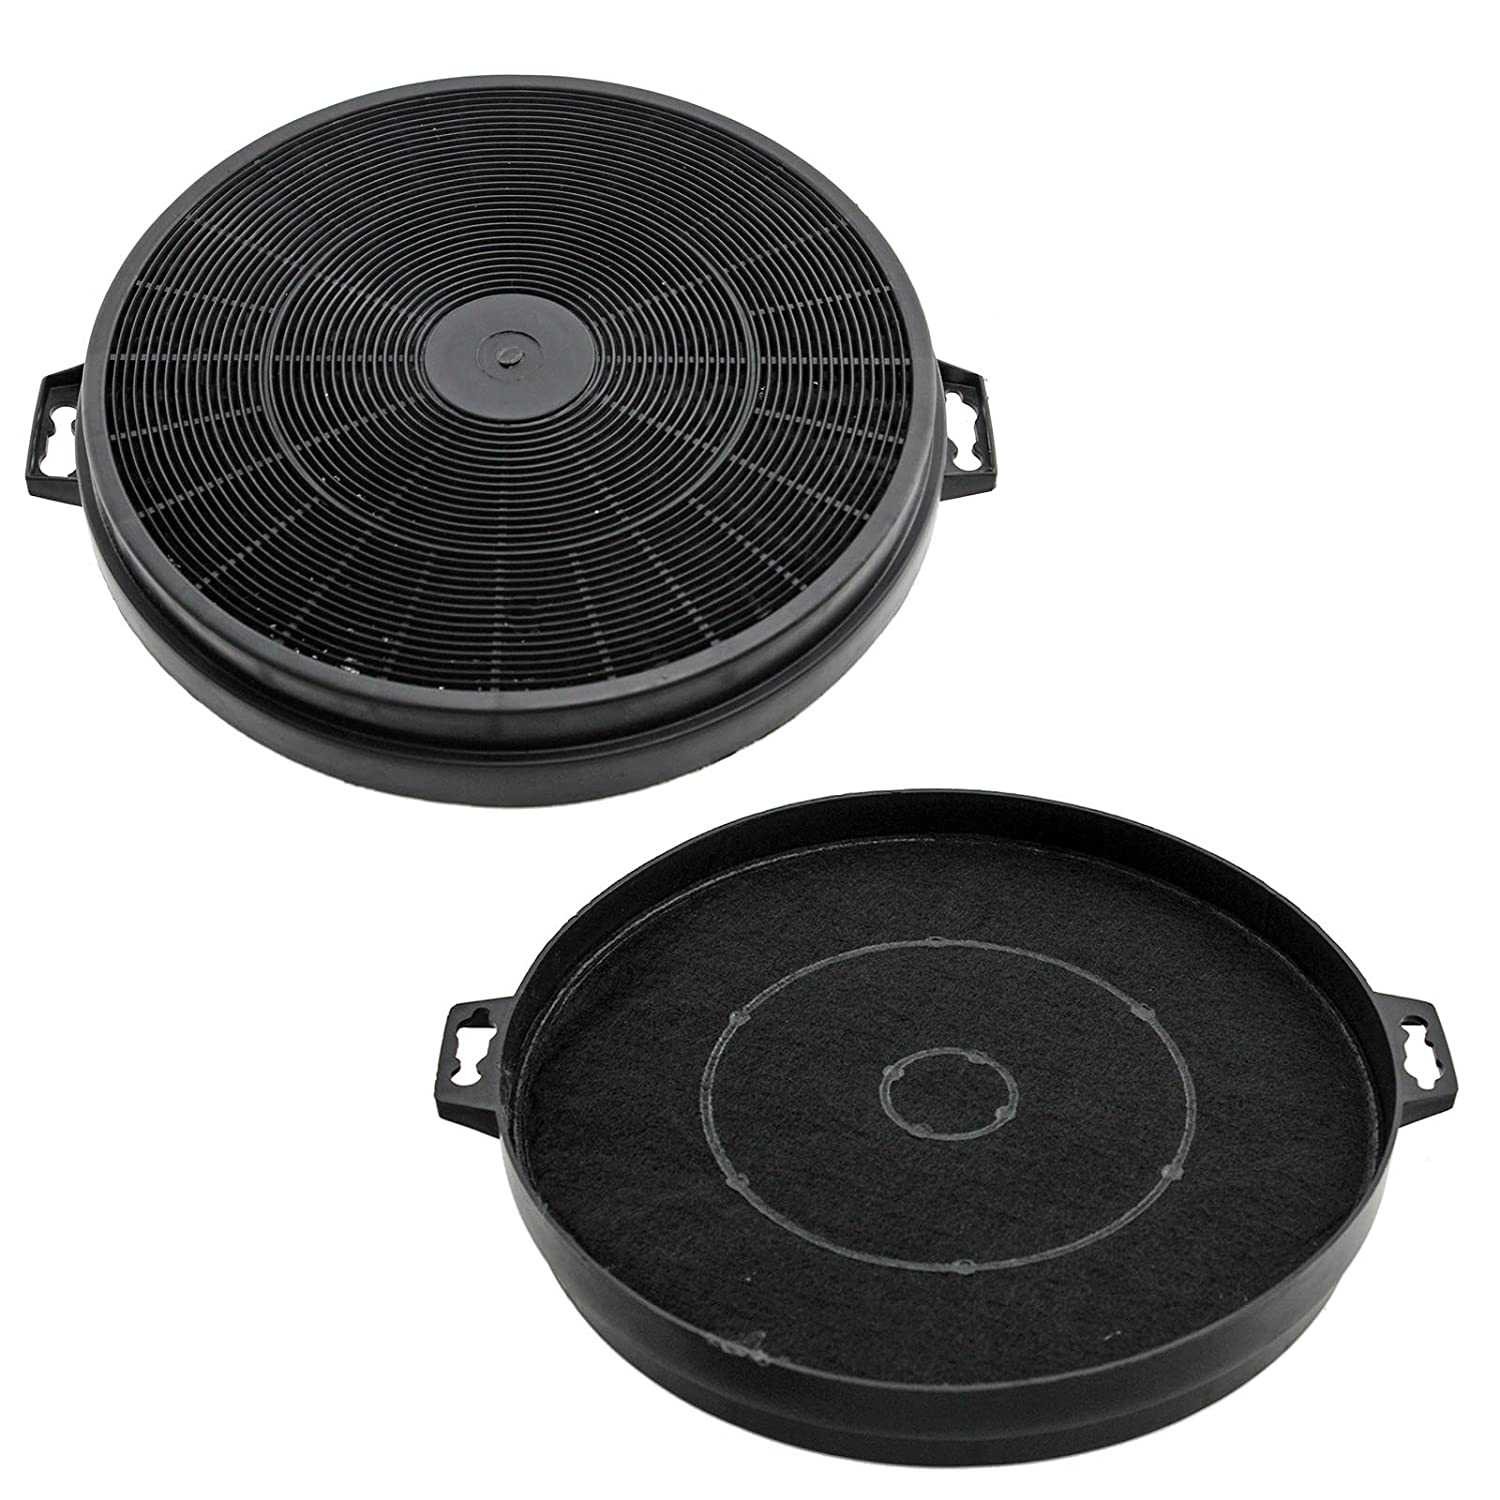 SPARES2GO Charcoal Vent Filter For Baumatic S1 Cooker Hoods (Pack of 2)